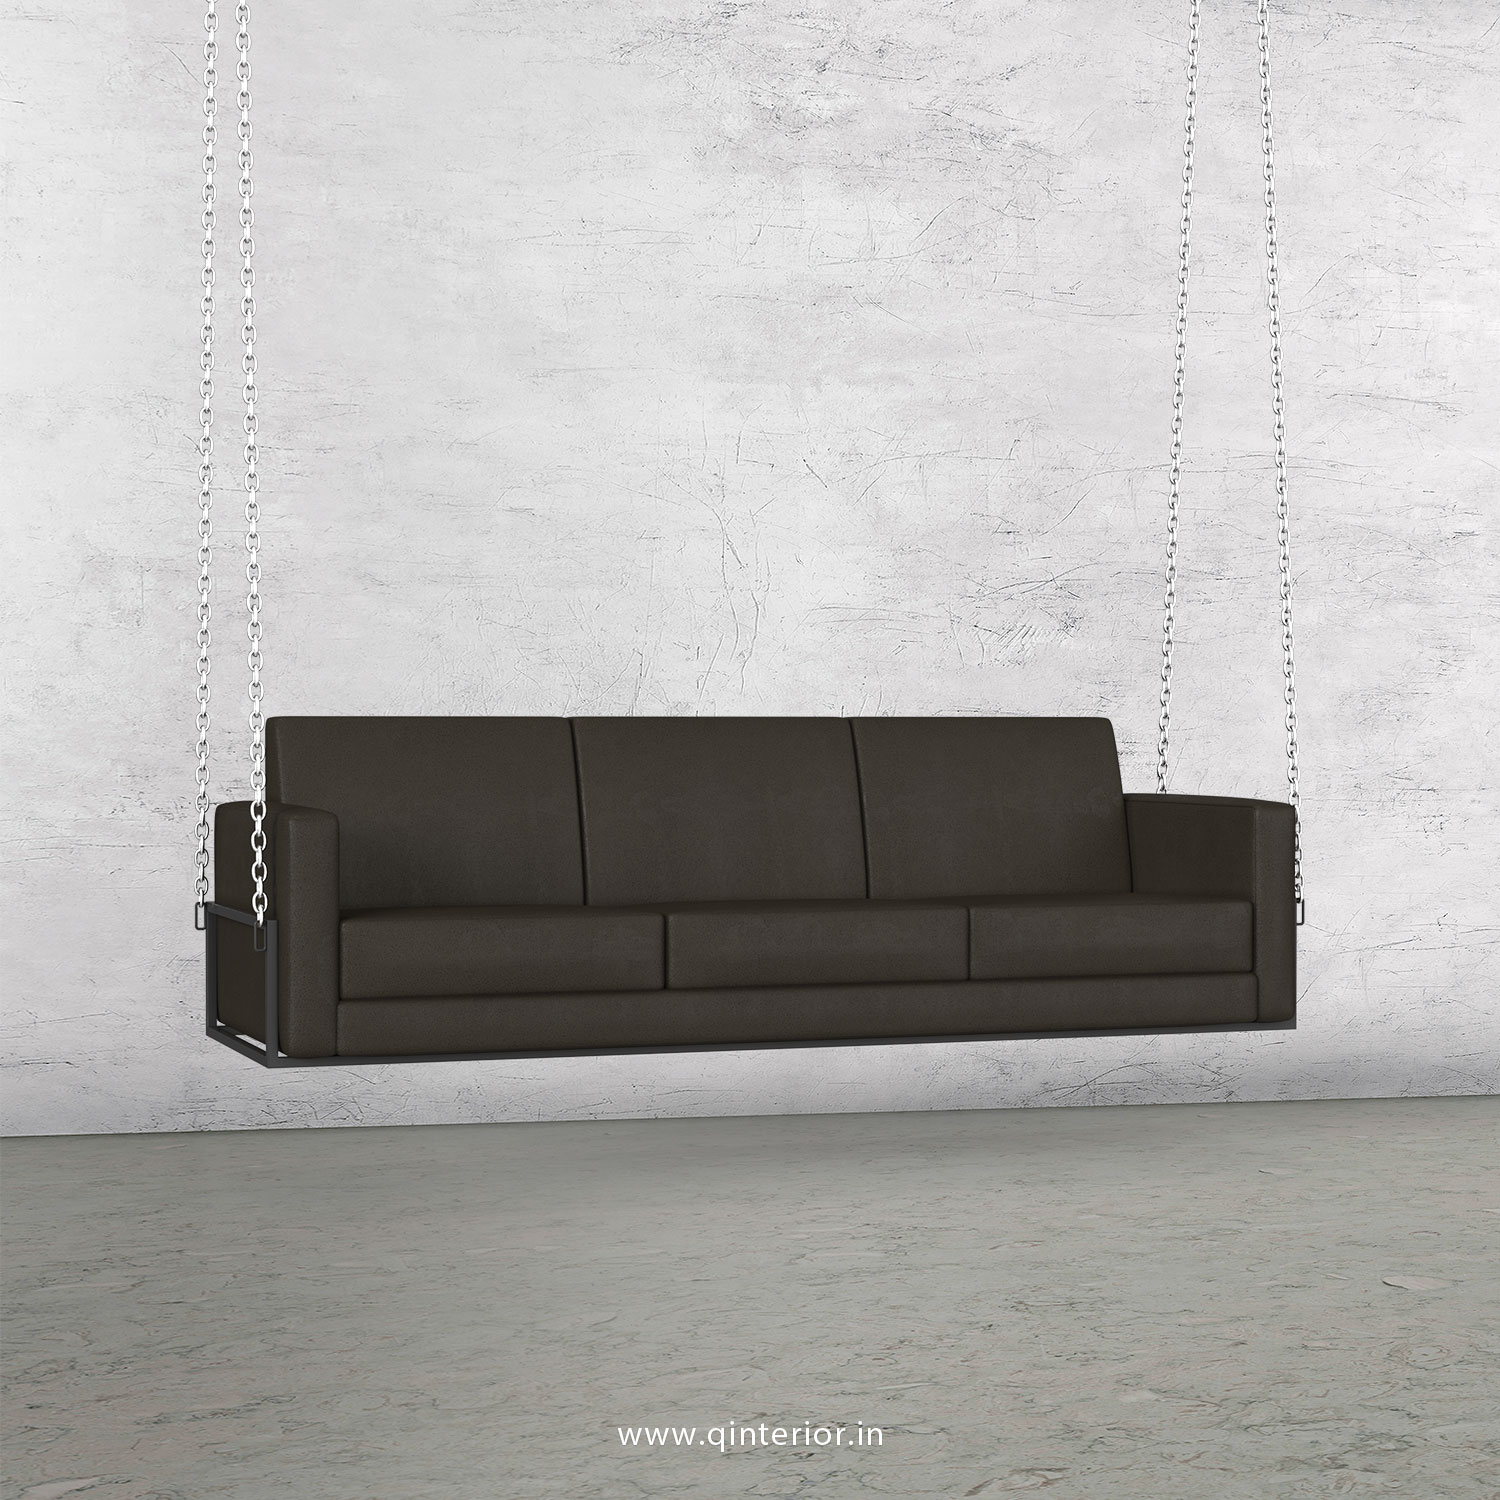 NIRVANA 3 Seater Swing Sofa in Fab Leather Fabric - SSF001 FL15